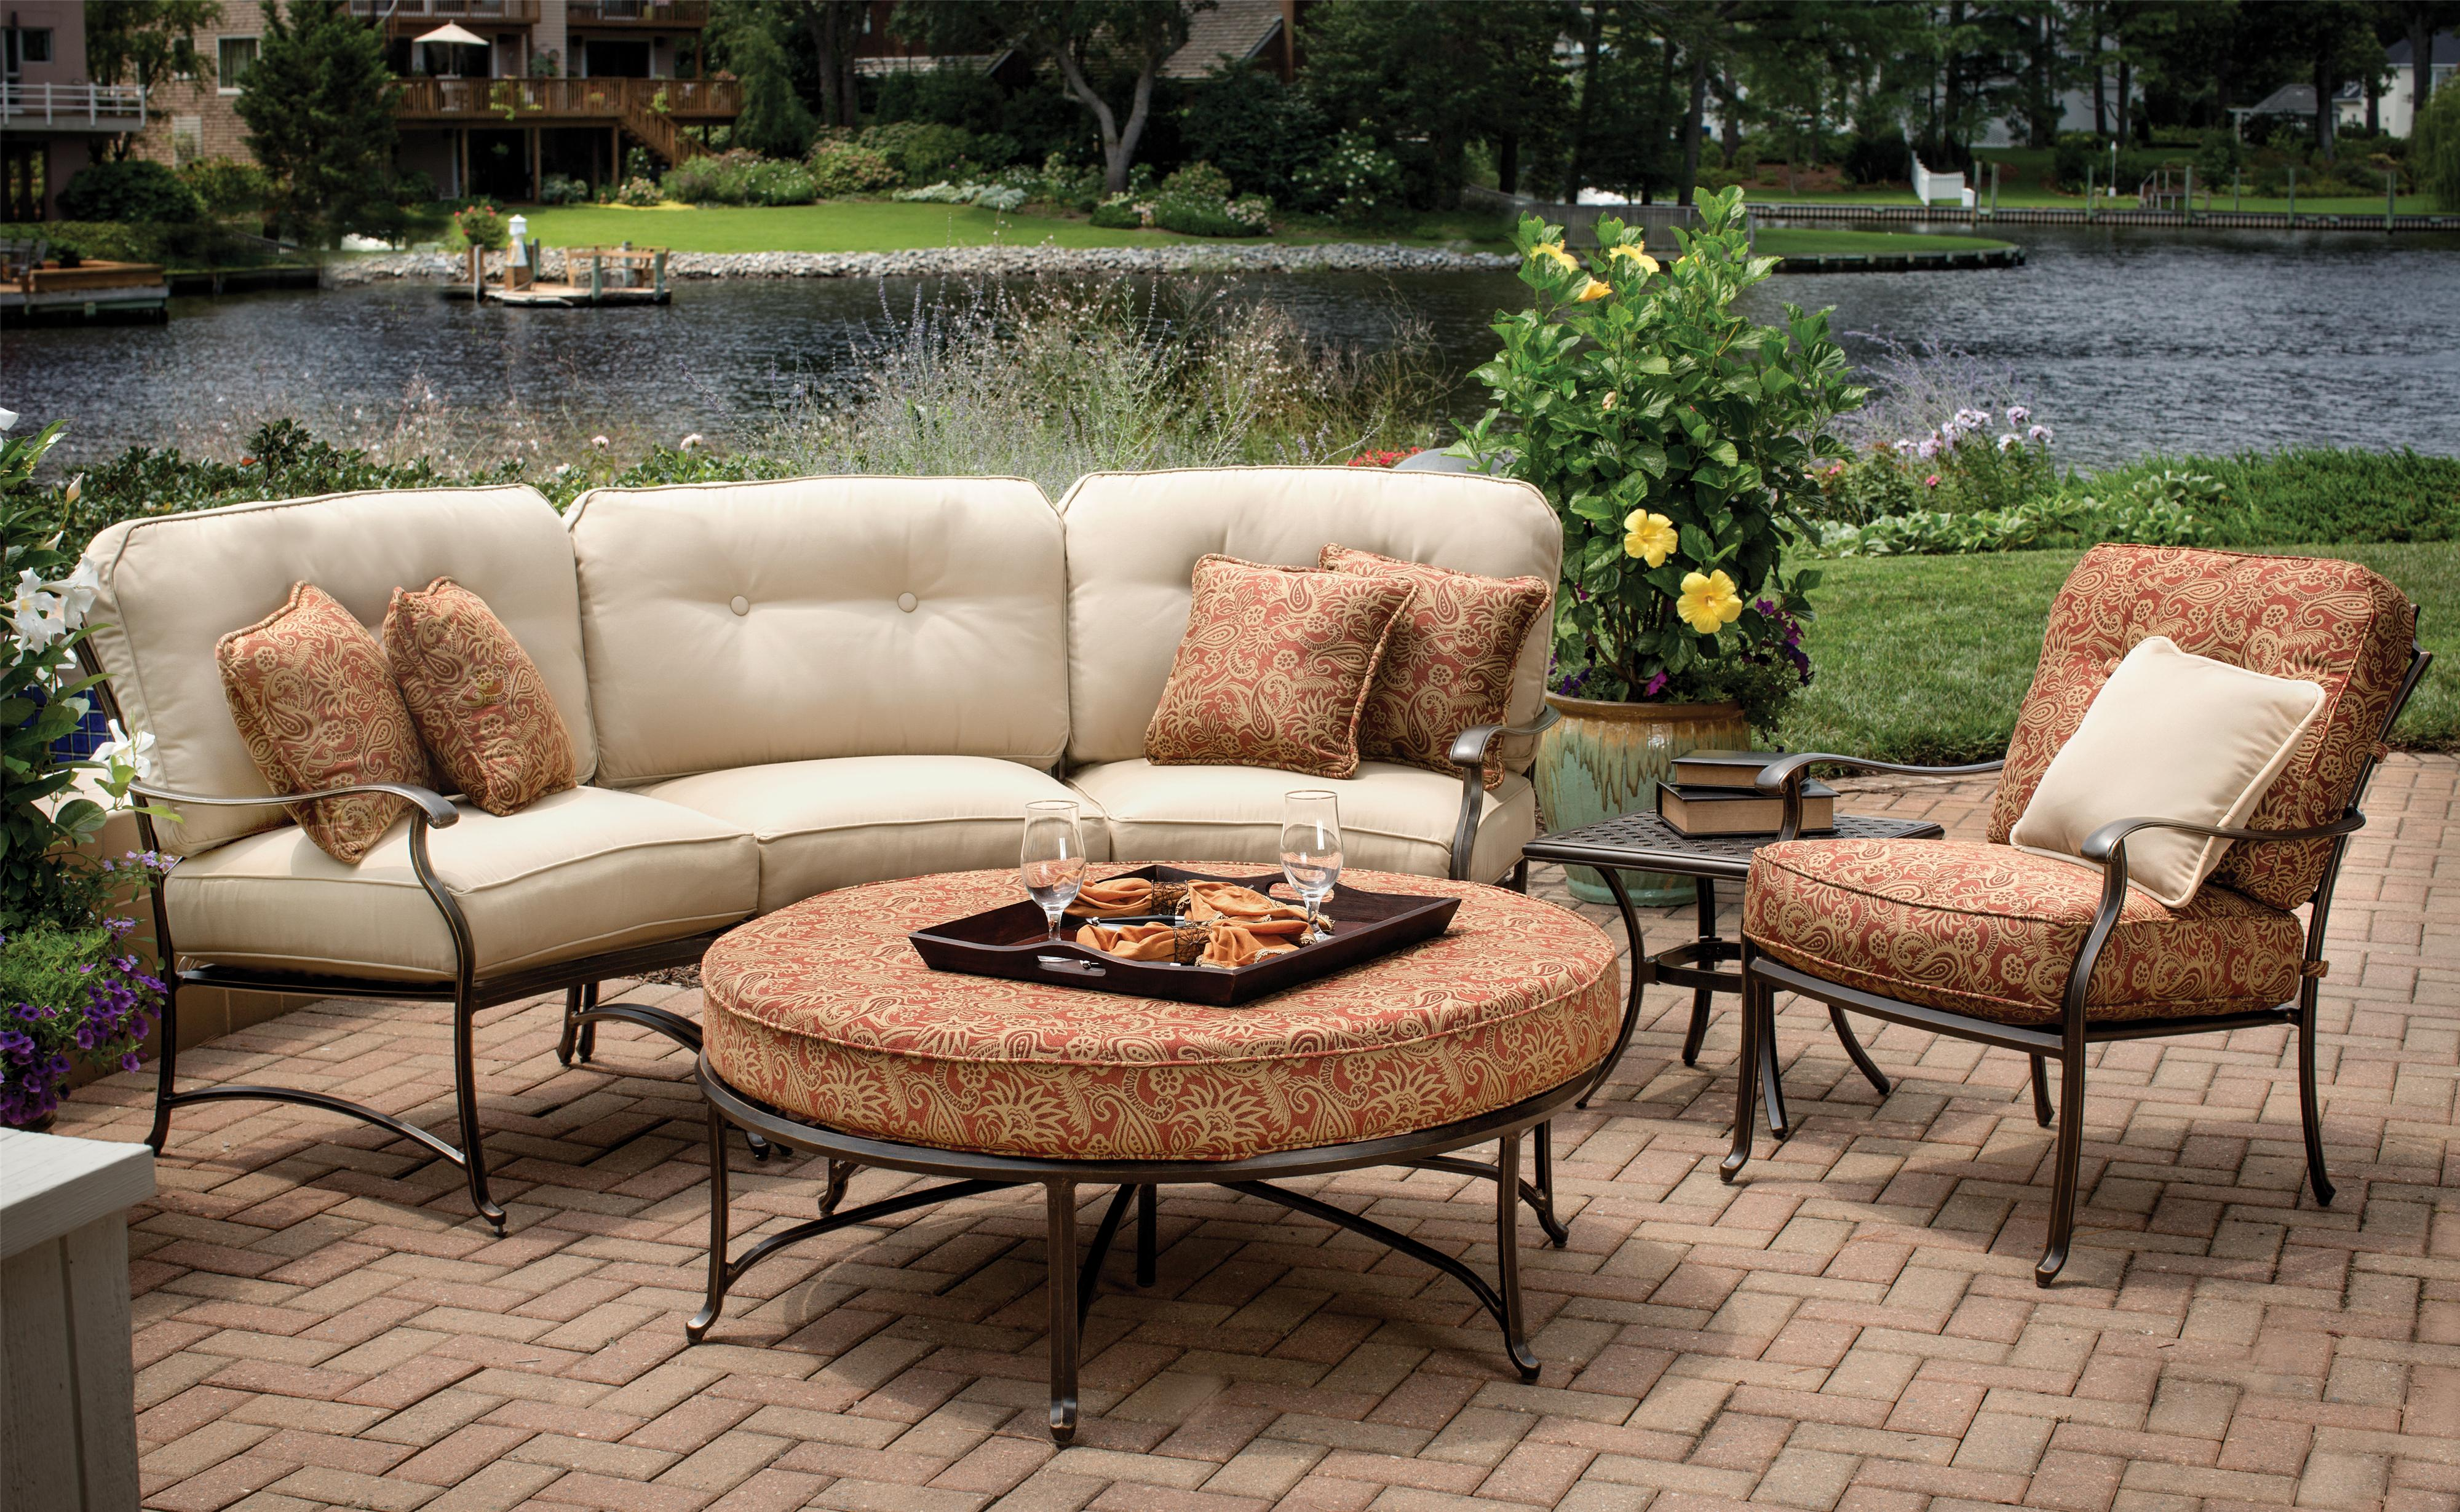 Agio Heritage Semi Round Sectional Chat Set AHFA Outdoor